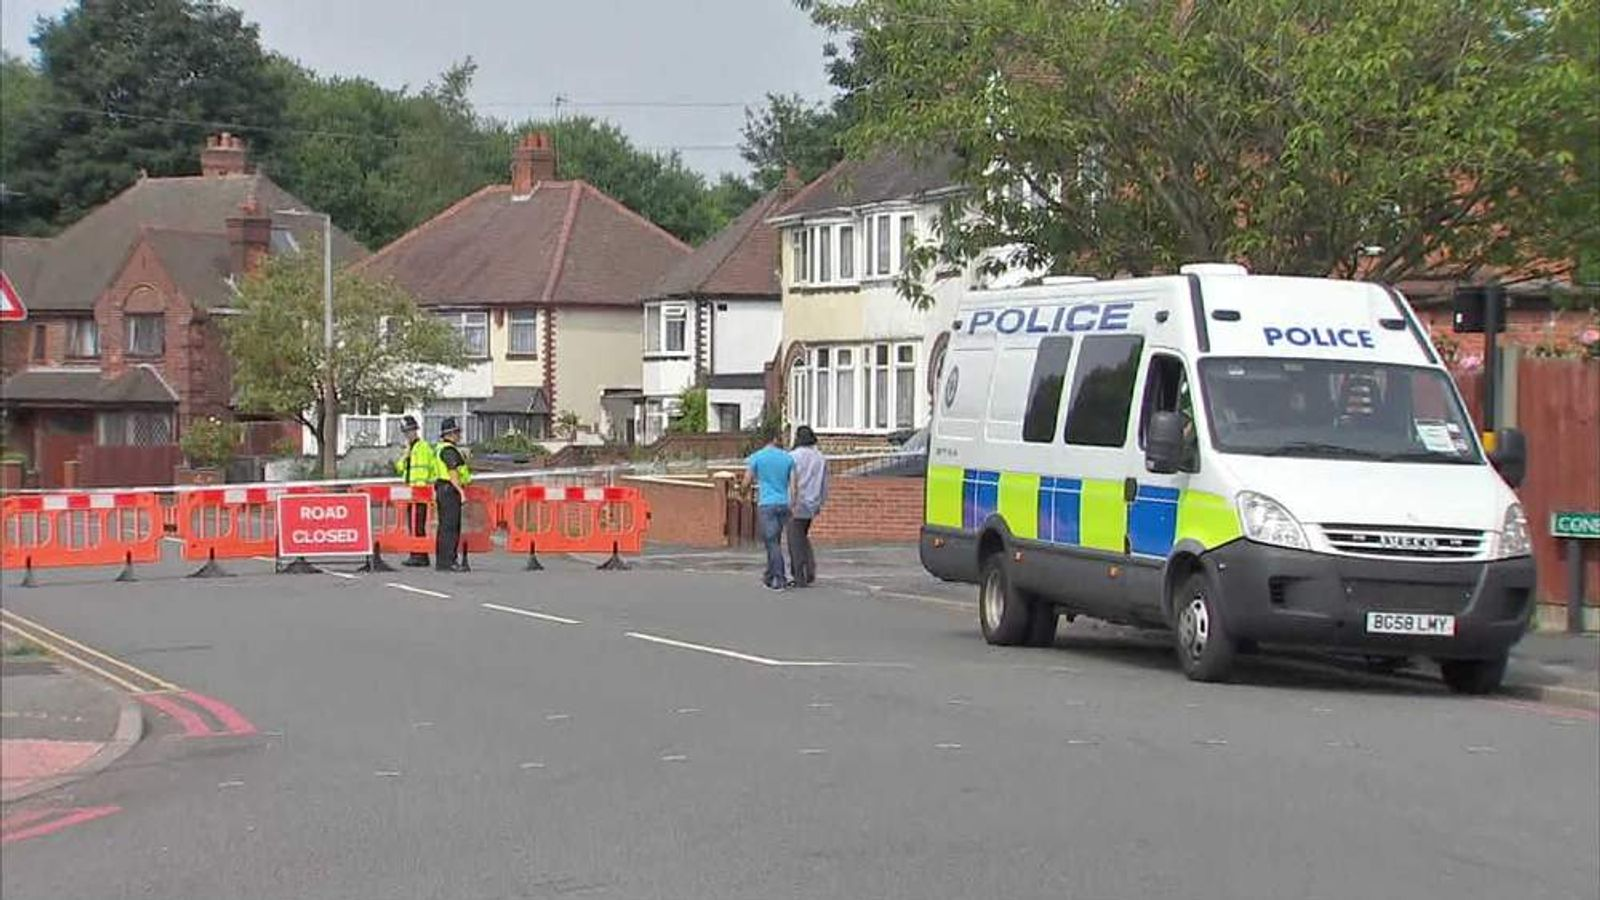 Police at scene after reports of loud bang in Tipton